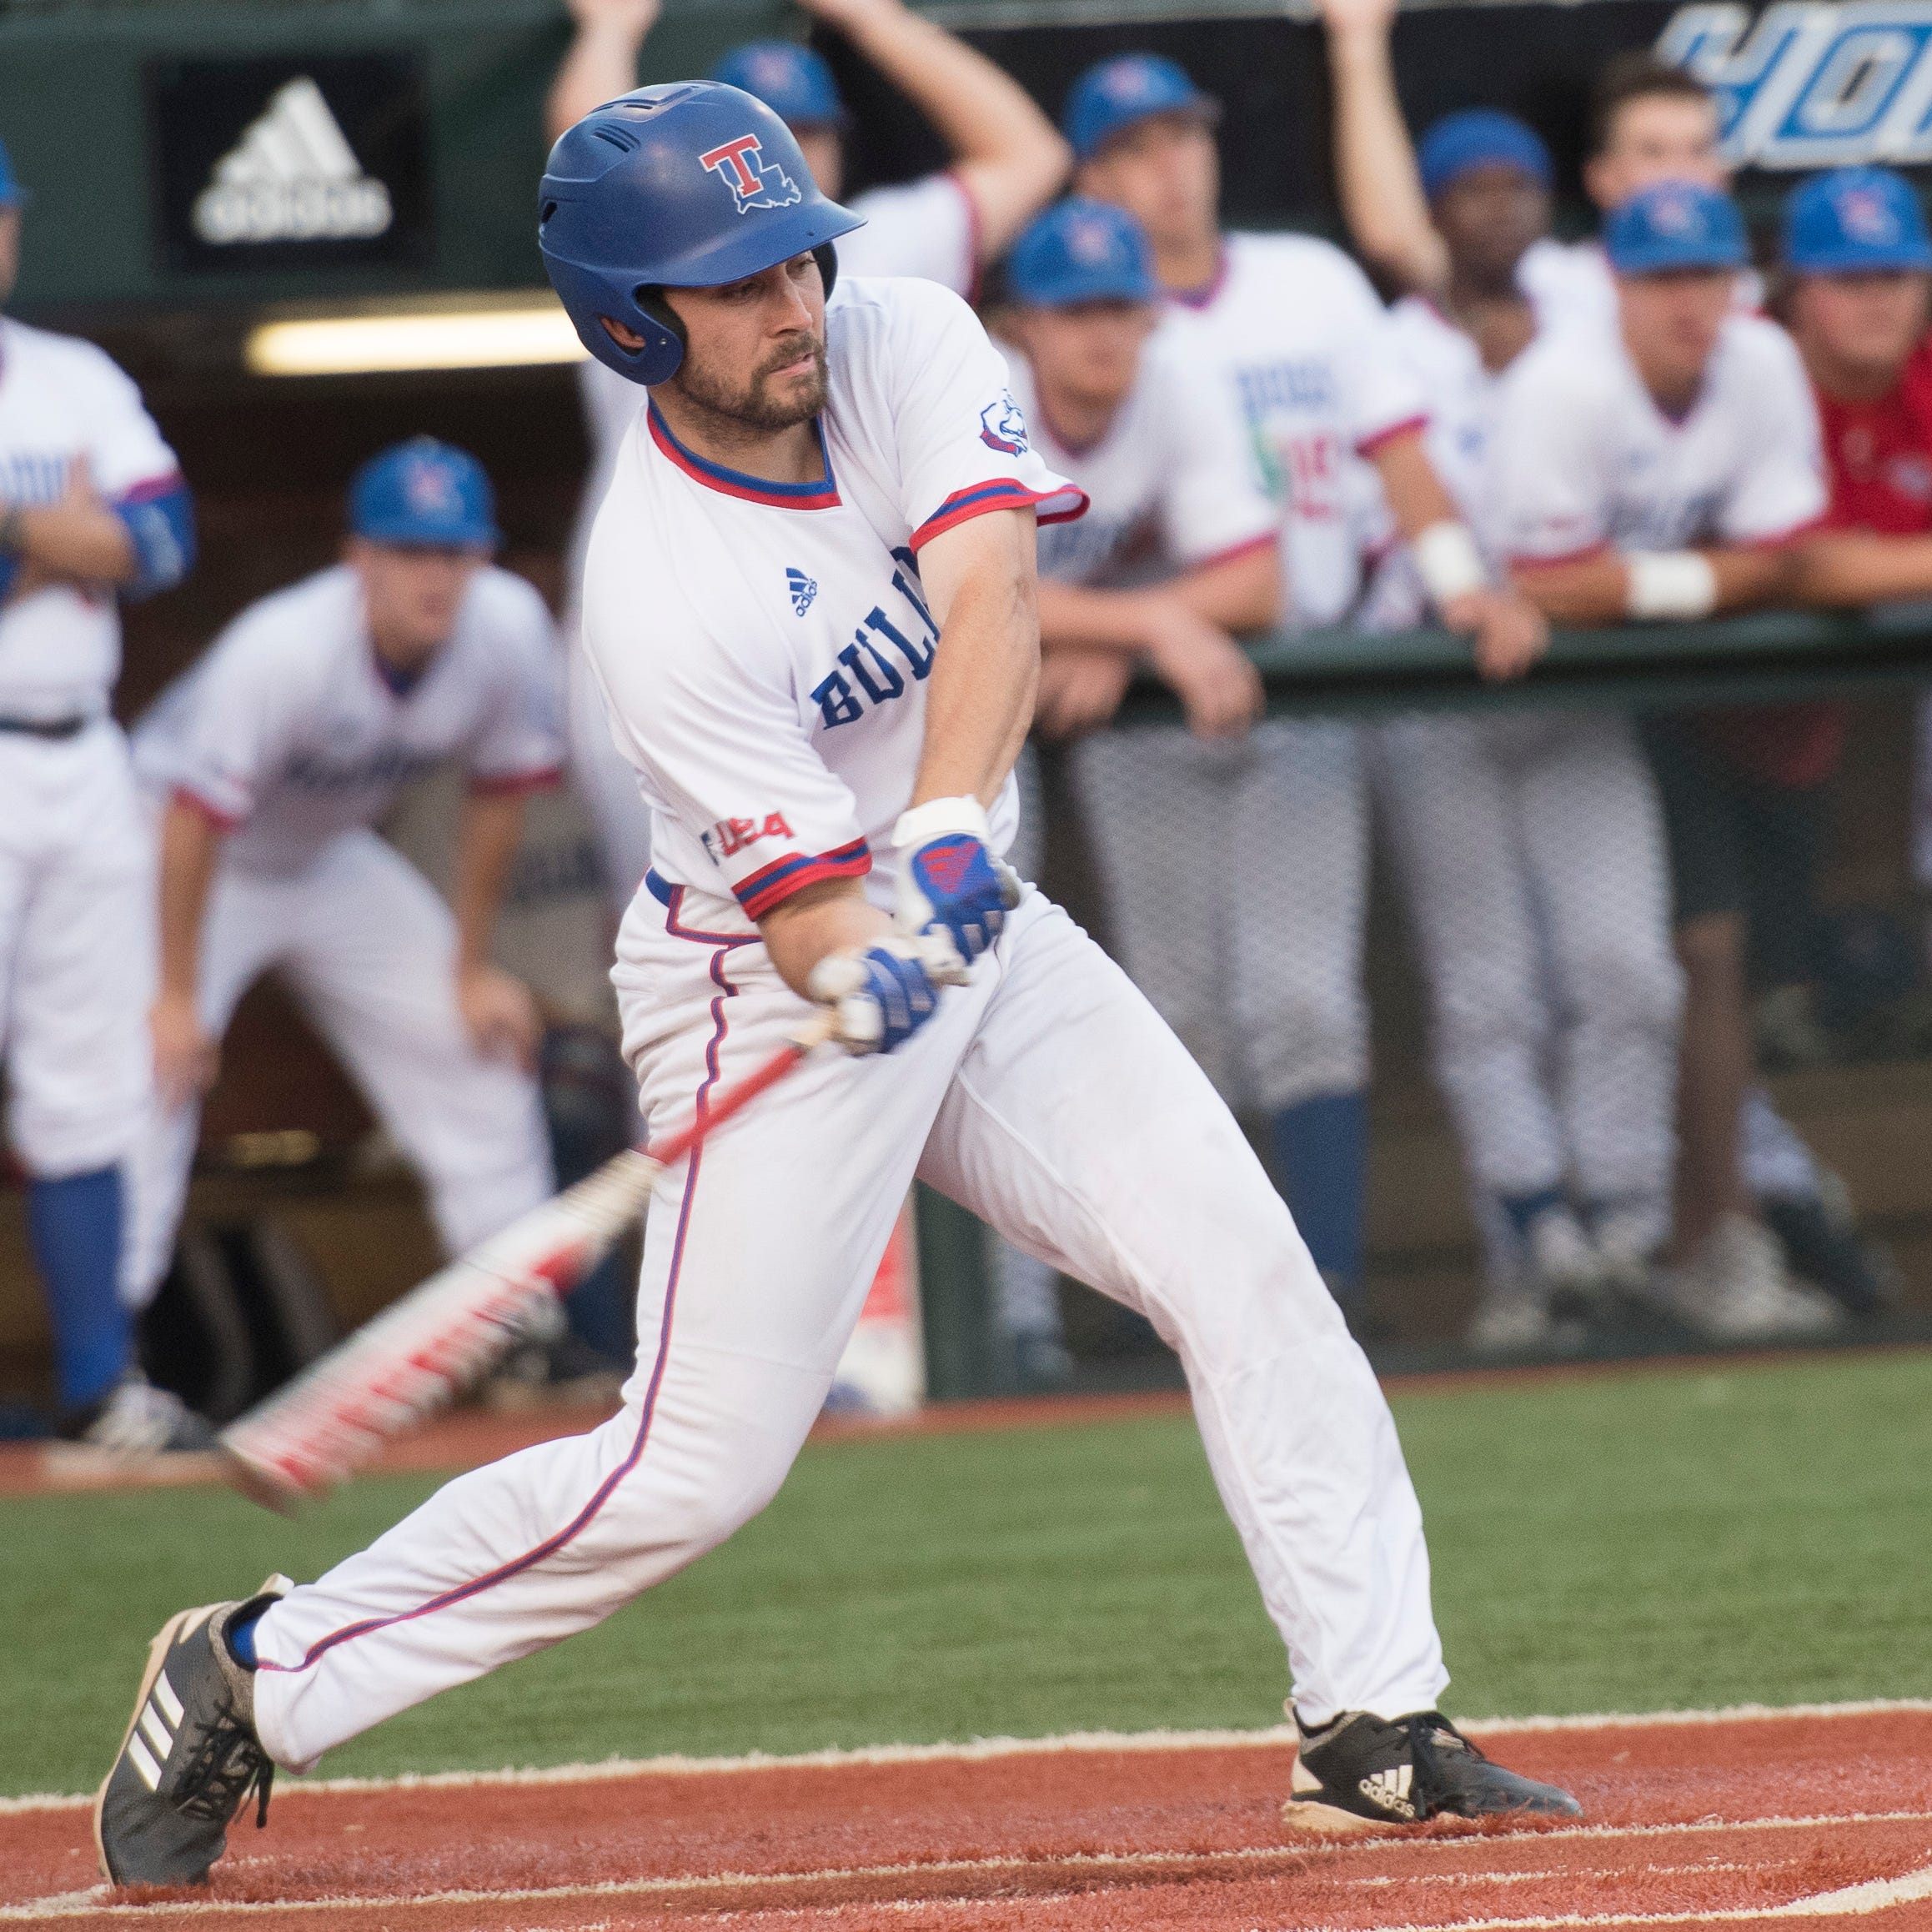 Conference USA Baseball Tournament 2019: Bracket, schedule, how to watch, stream